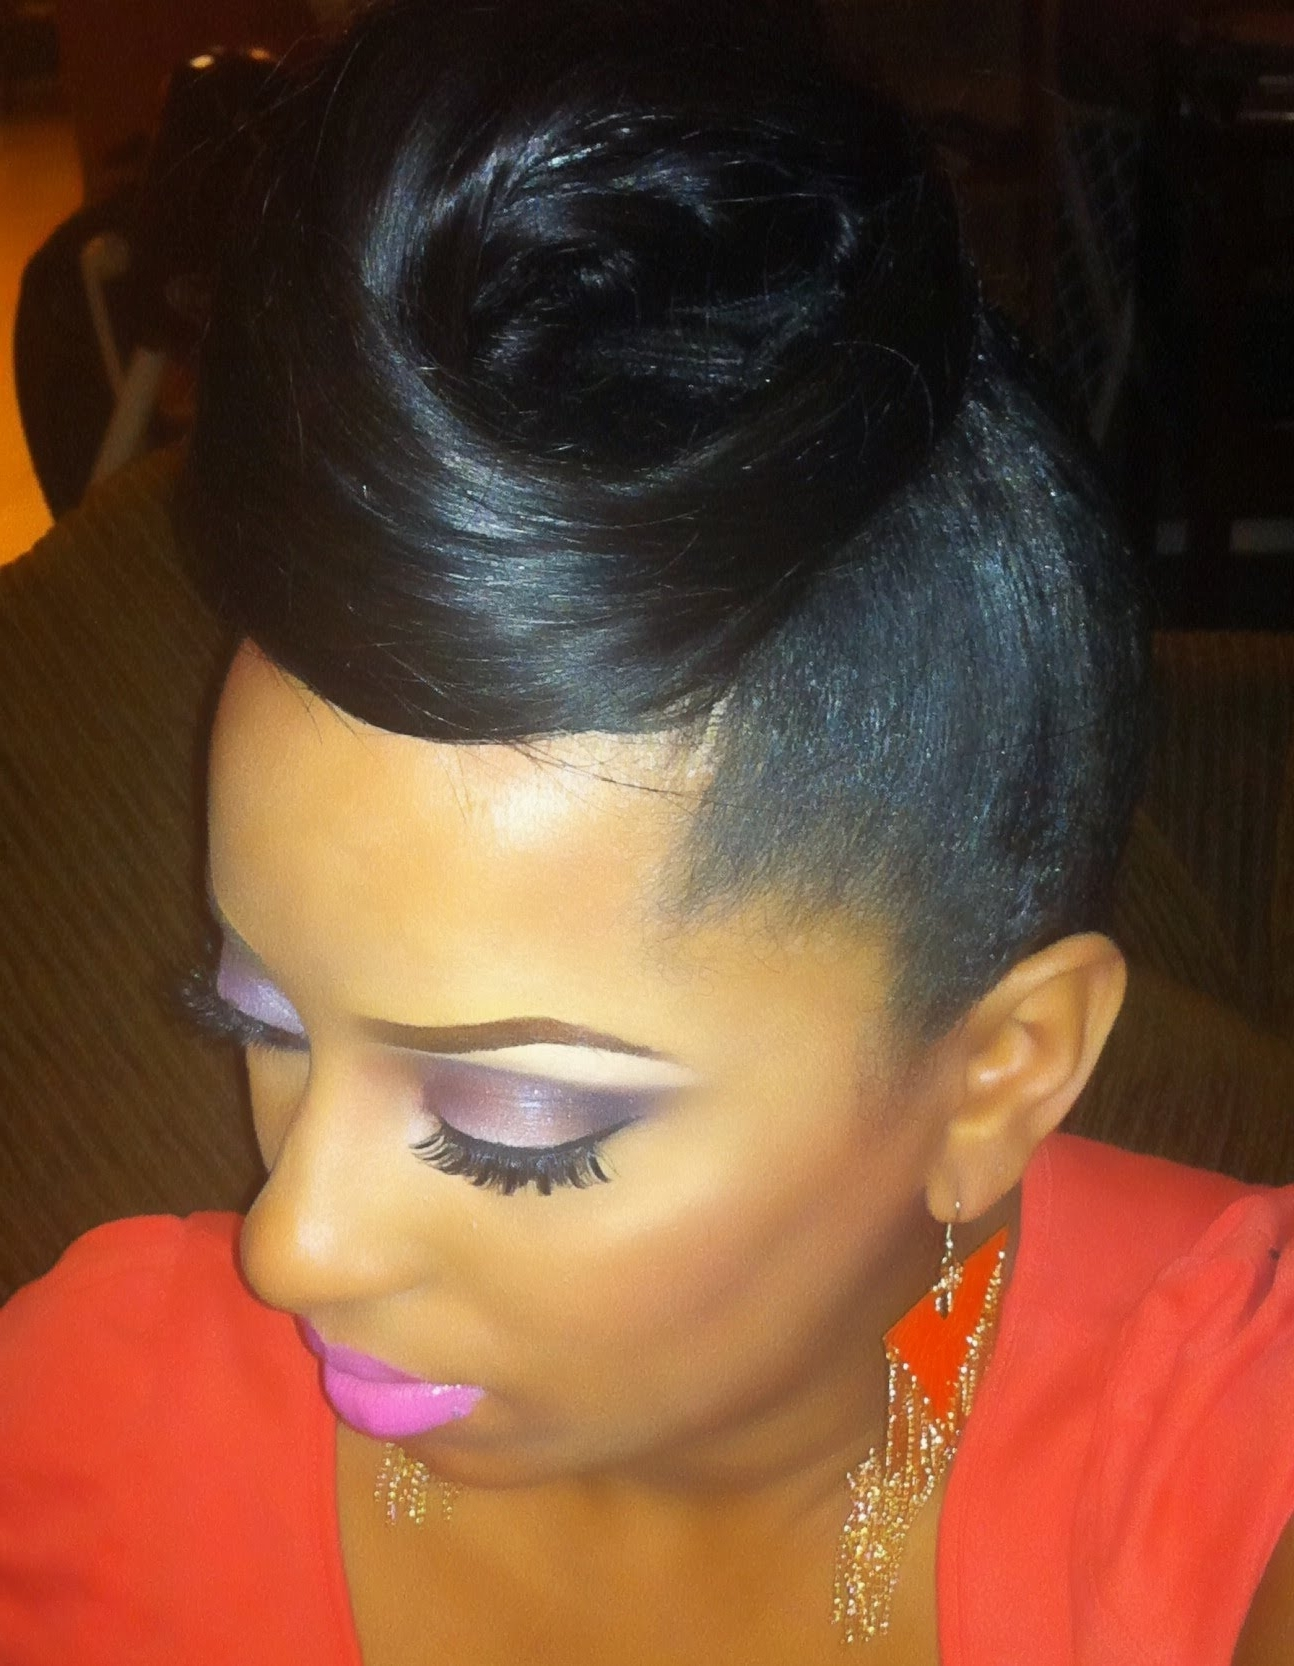 Updo Weave Hairstyles Black Hair Cute With For Women Easy Without With Updo Hairstyles With Bangs